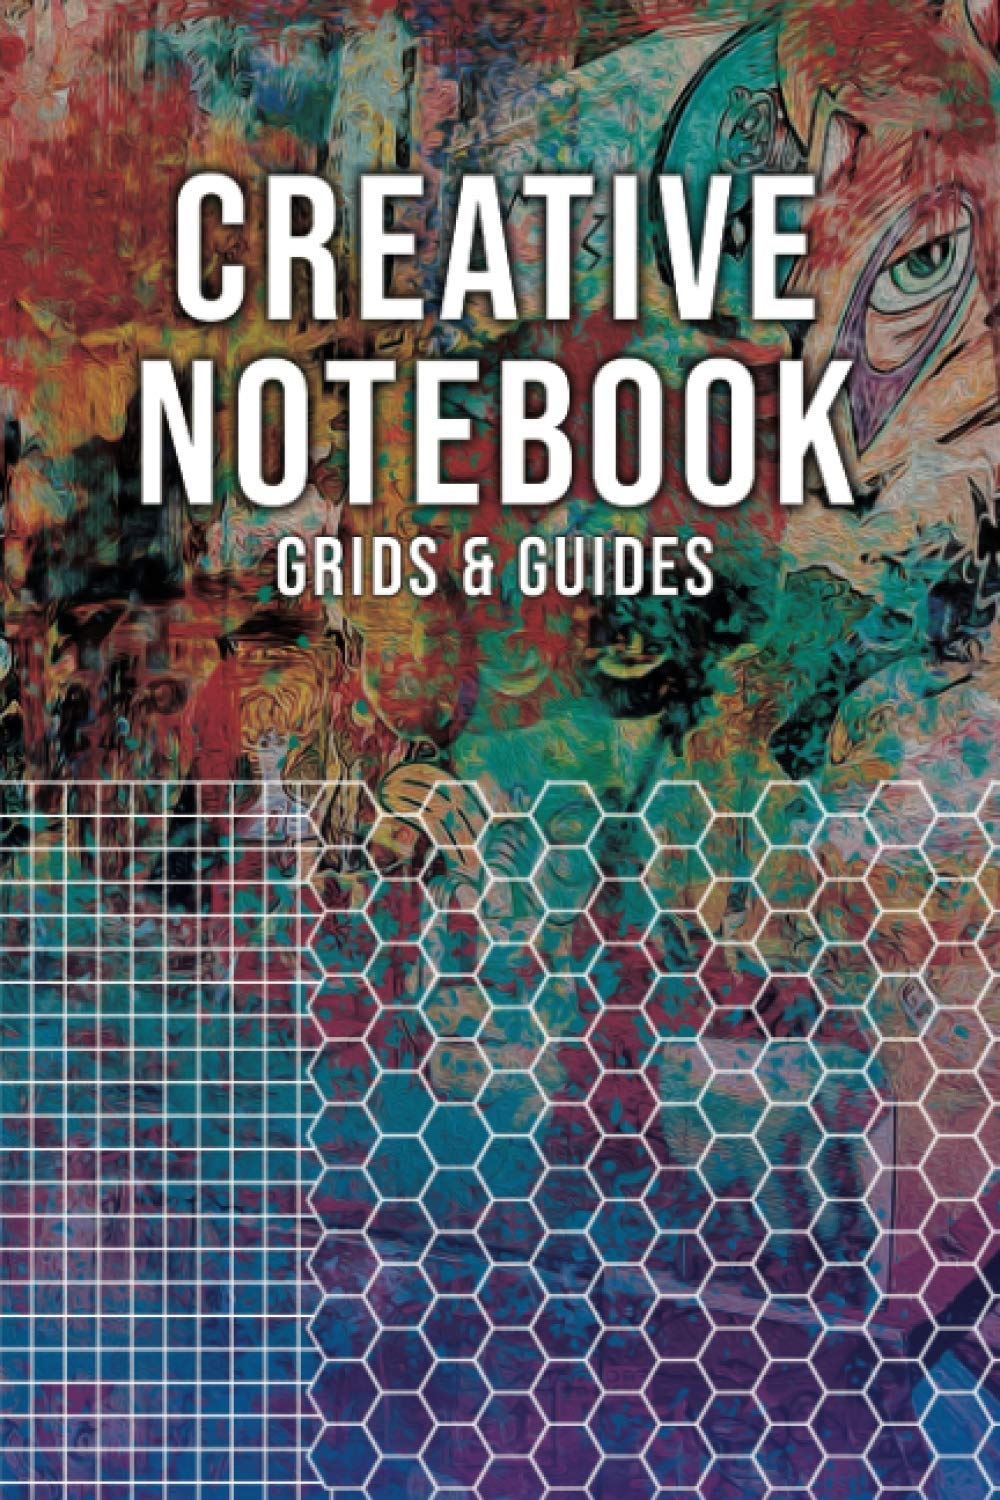 CREATIVE NOTEBOOK: Notebook with Grids and Guides for Visual Thinkers and Artists